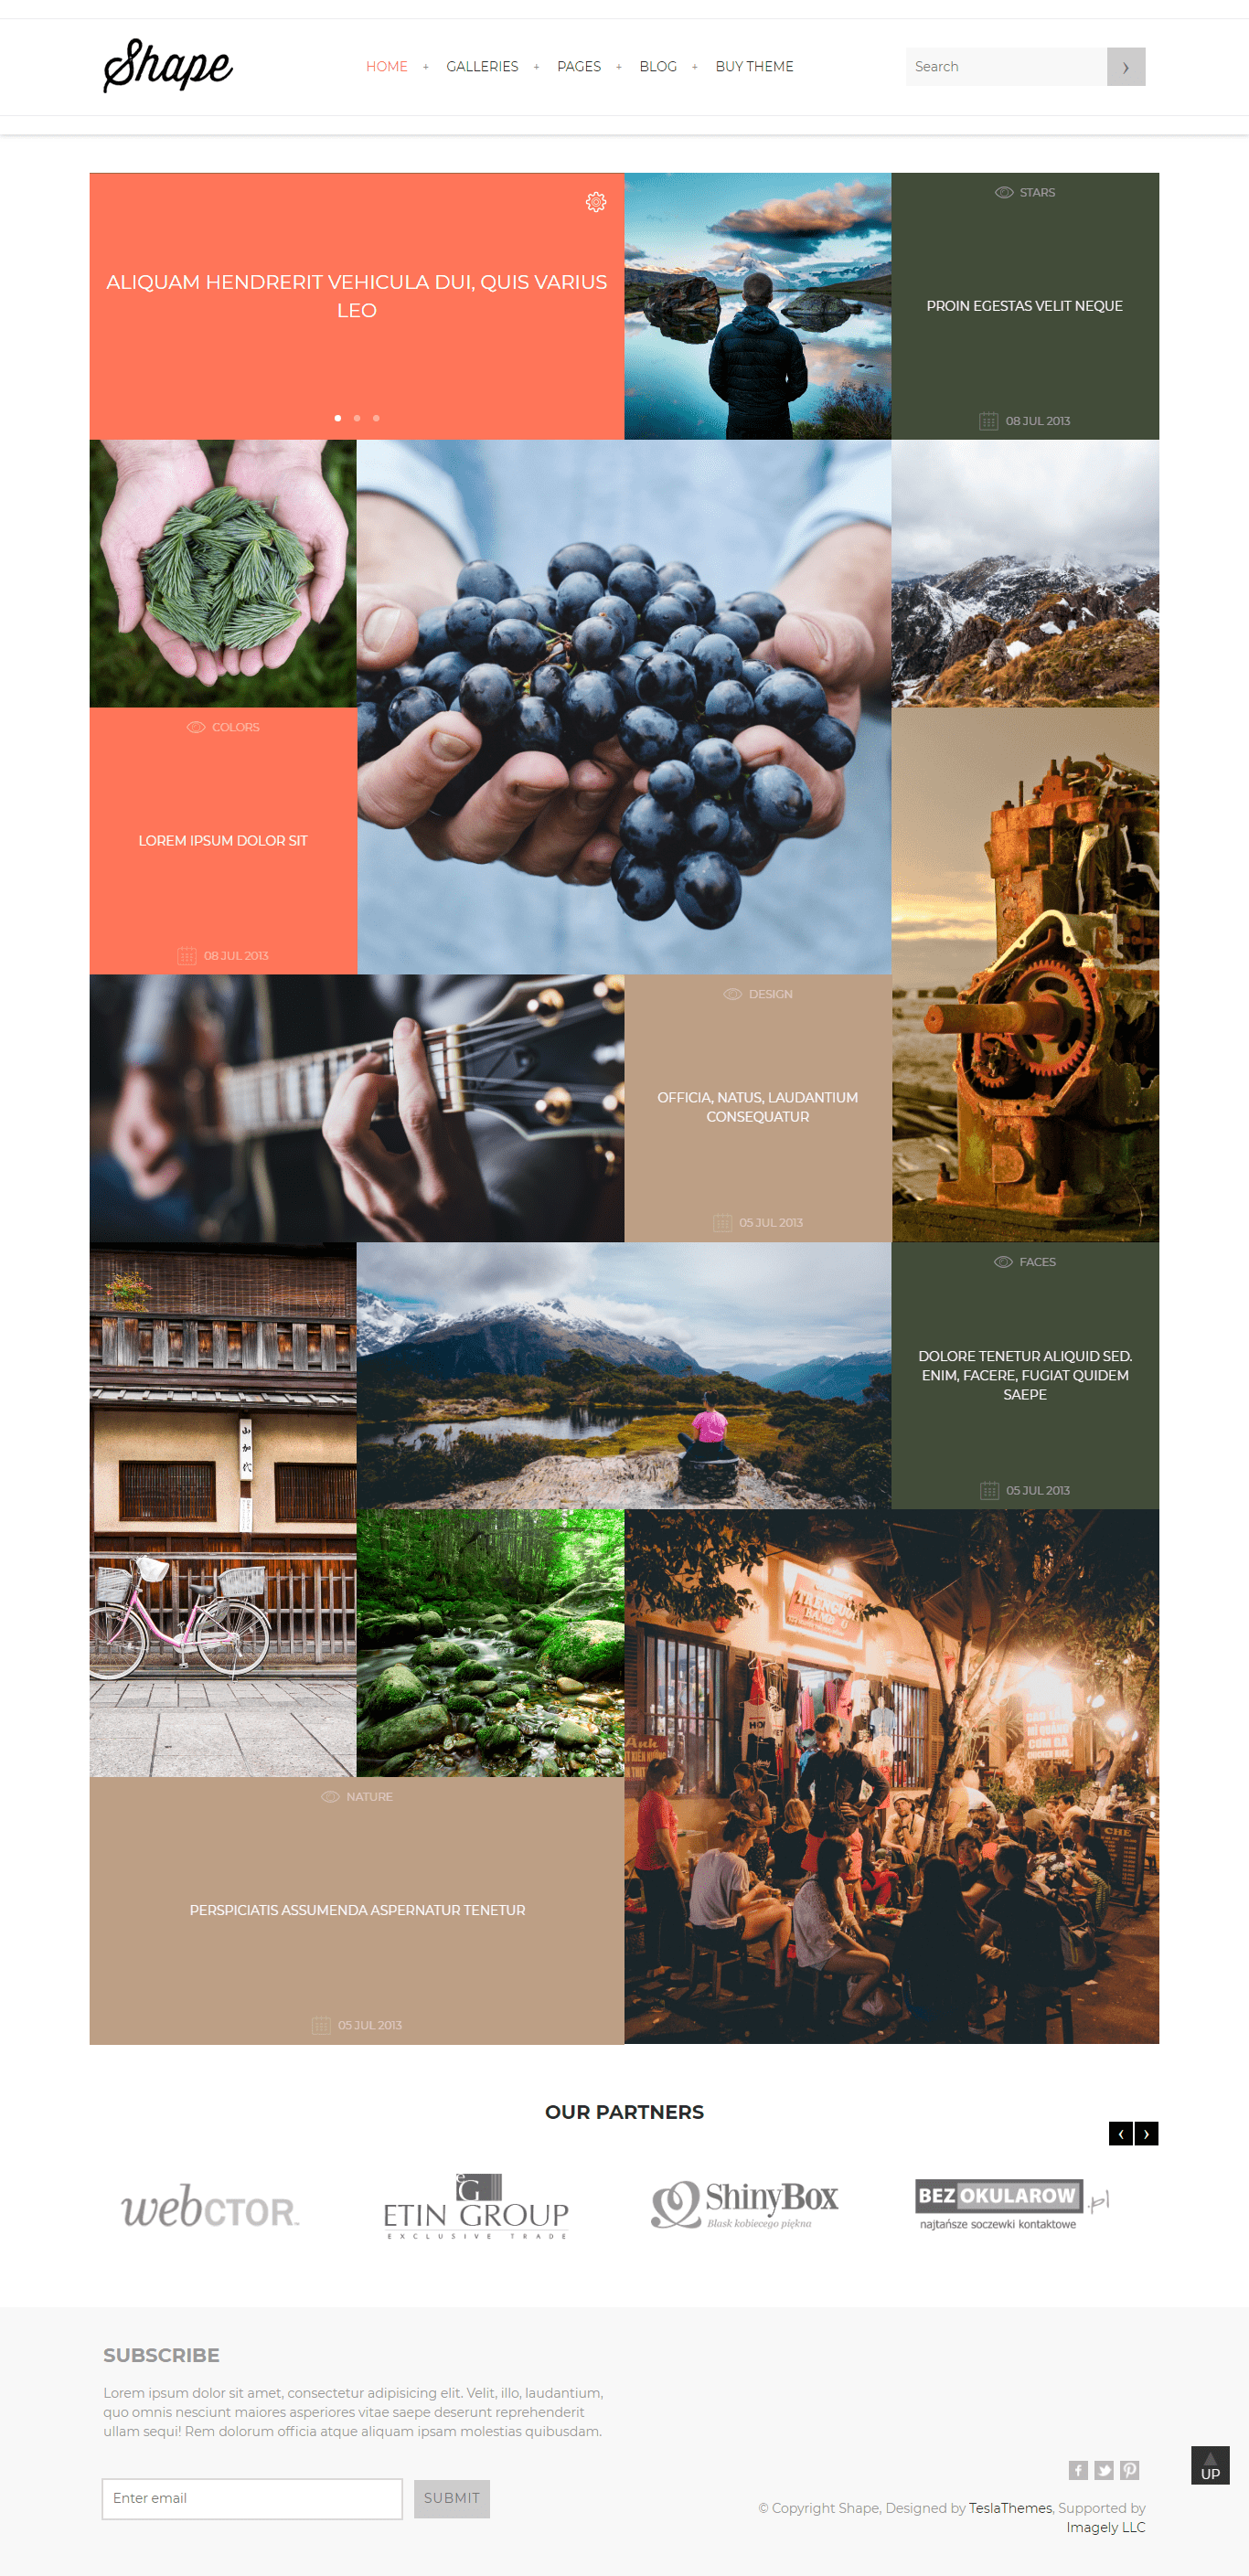 Shape - Perfect WordPress Theme For Photography